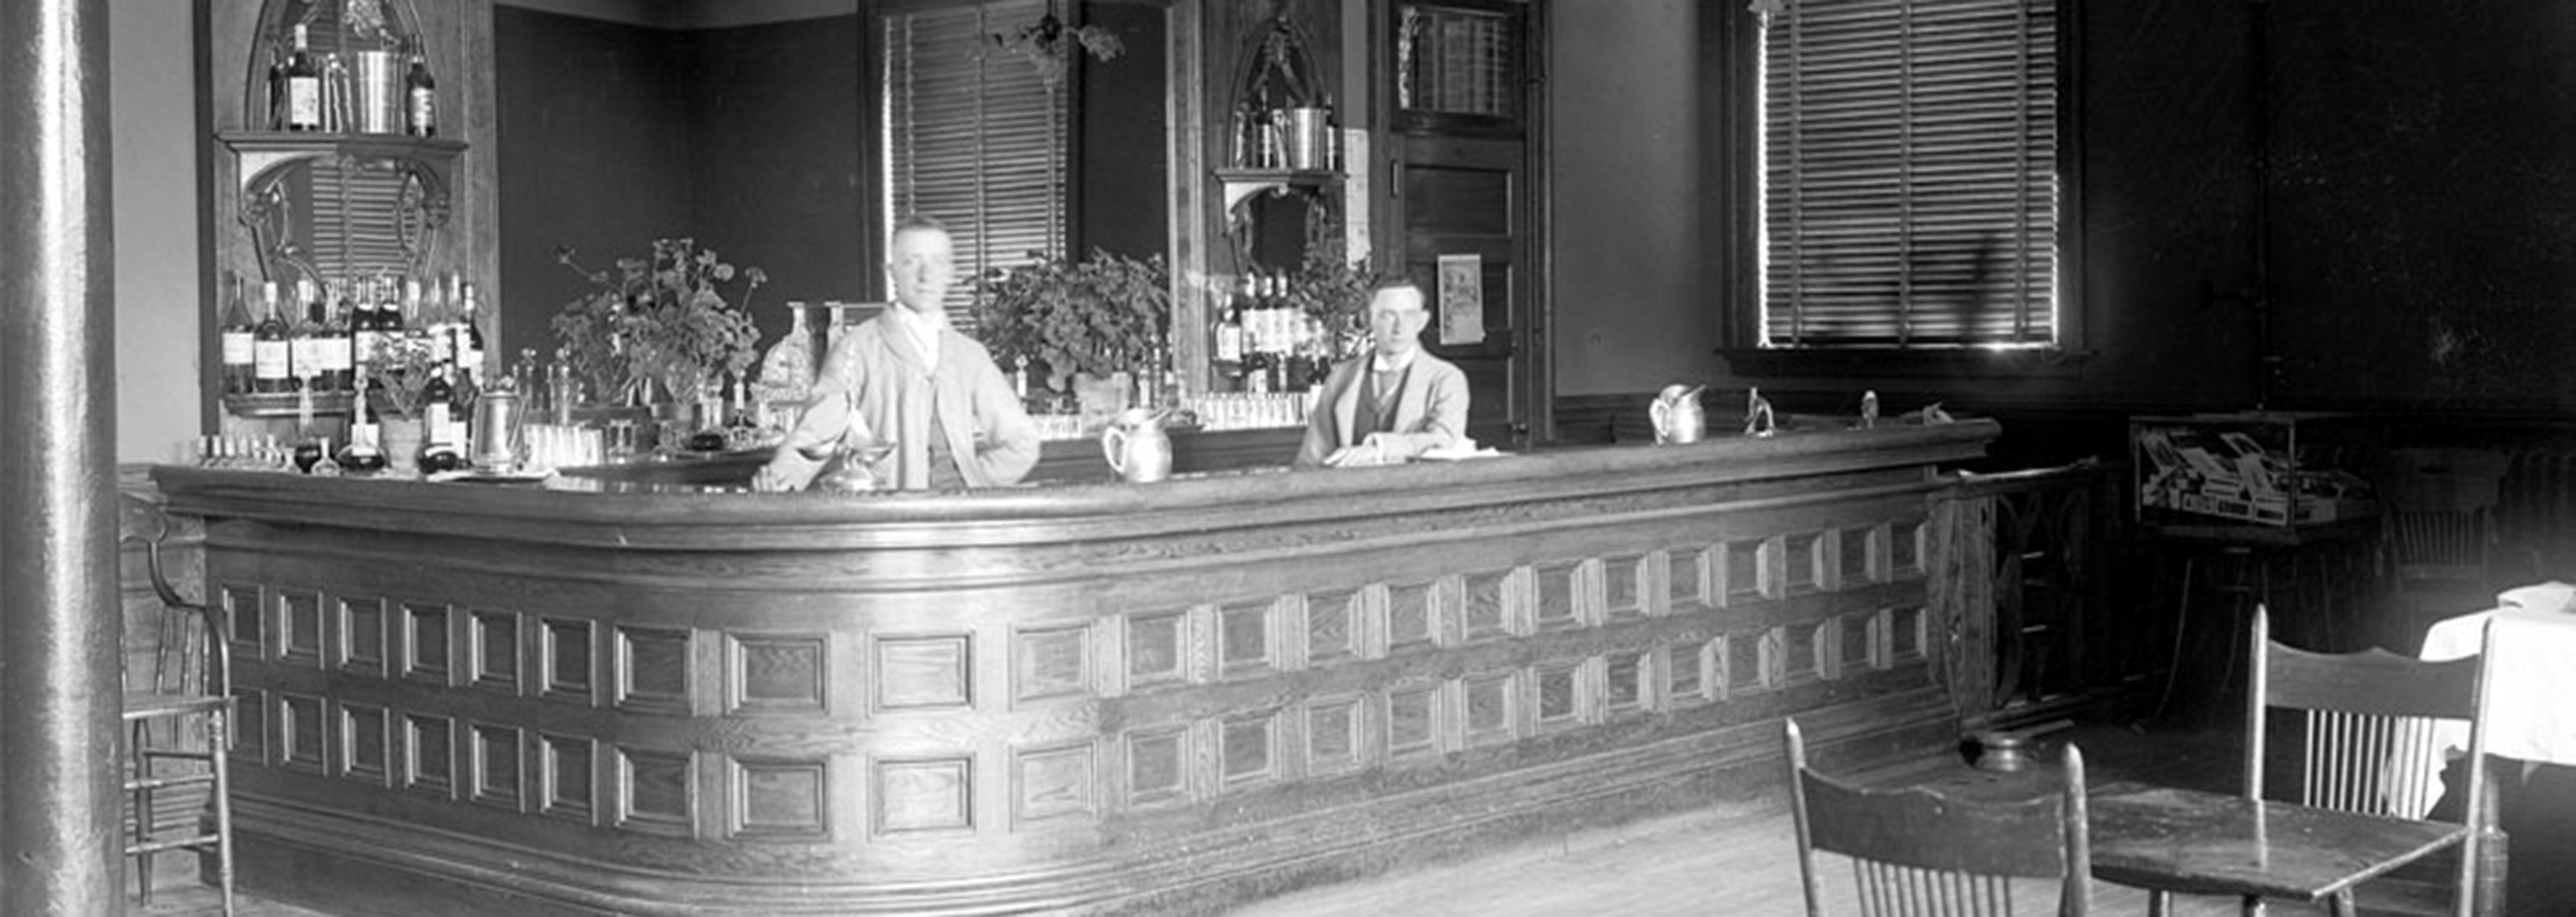 Historic image of bar at the Hotel Colorado, 1893, Member of Historic Hotels of America, Glenwood Springs, Colorado, Ghost Stories